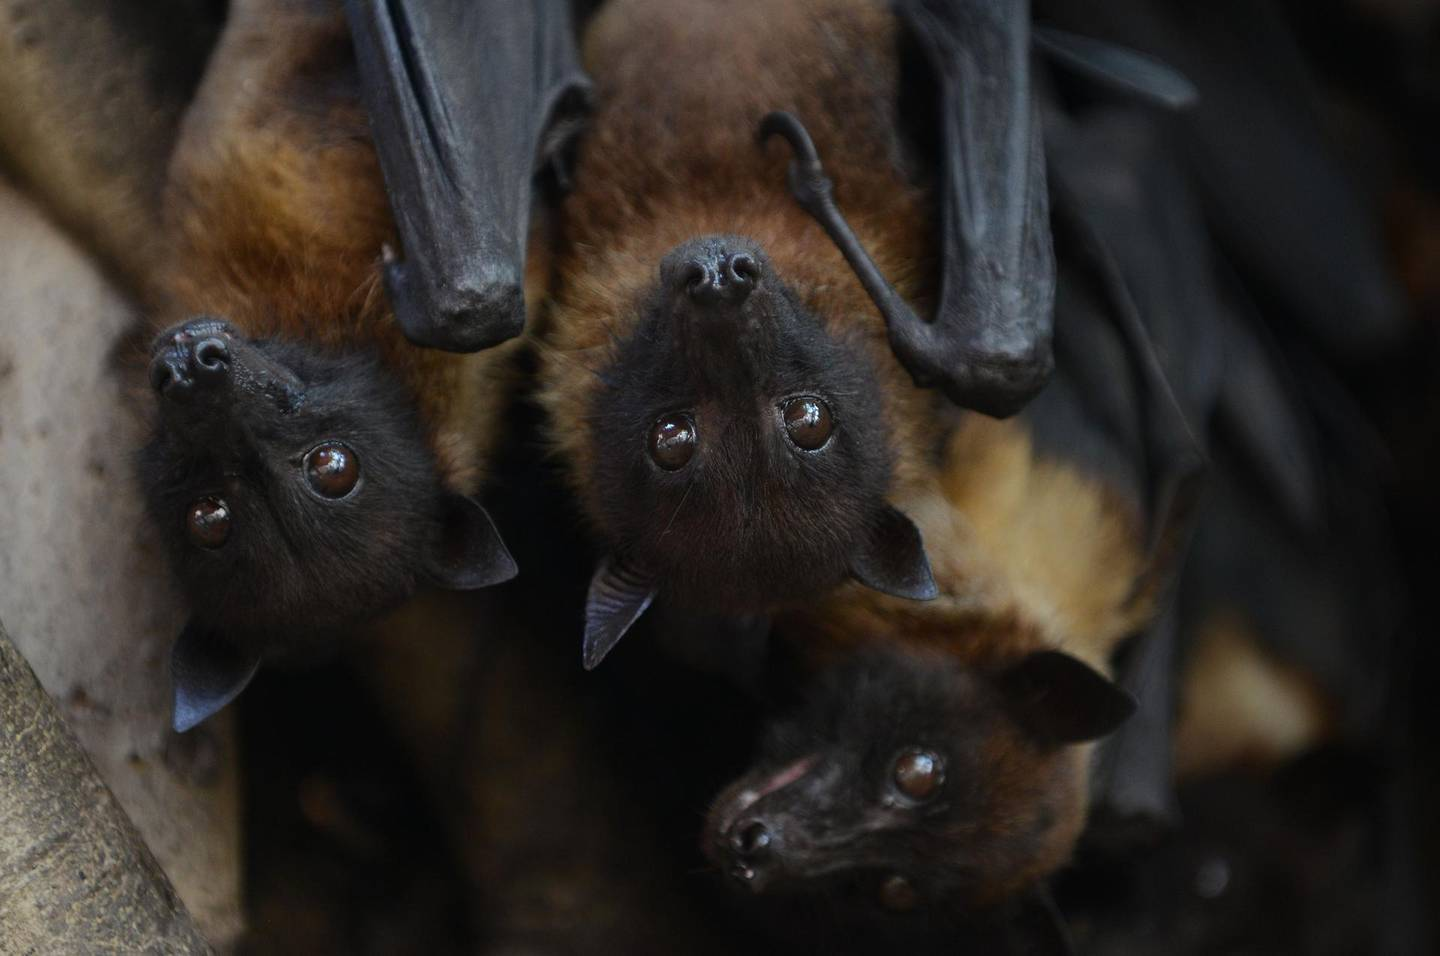 (FILES) In this file photo taken on April 29, 2018 Indian bats cling onto the branches of a banyan tree on the campus of Gujarat College in Ahmedabad. A virus mainly carried by fruit bats which has spread across Asian nations has killed at least three people in southern India causing panic in the locality, officials said. / AFP / SAM PANTHAKY